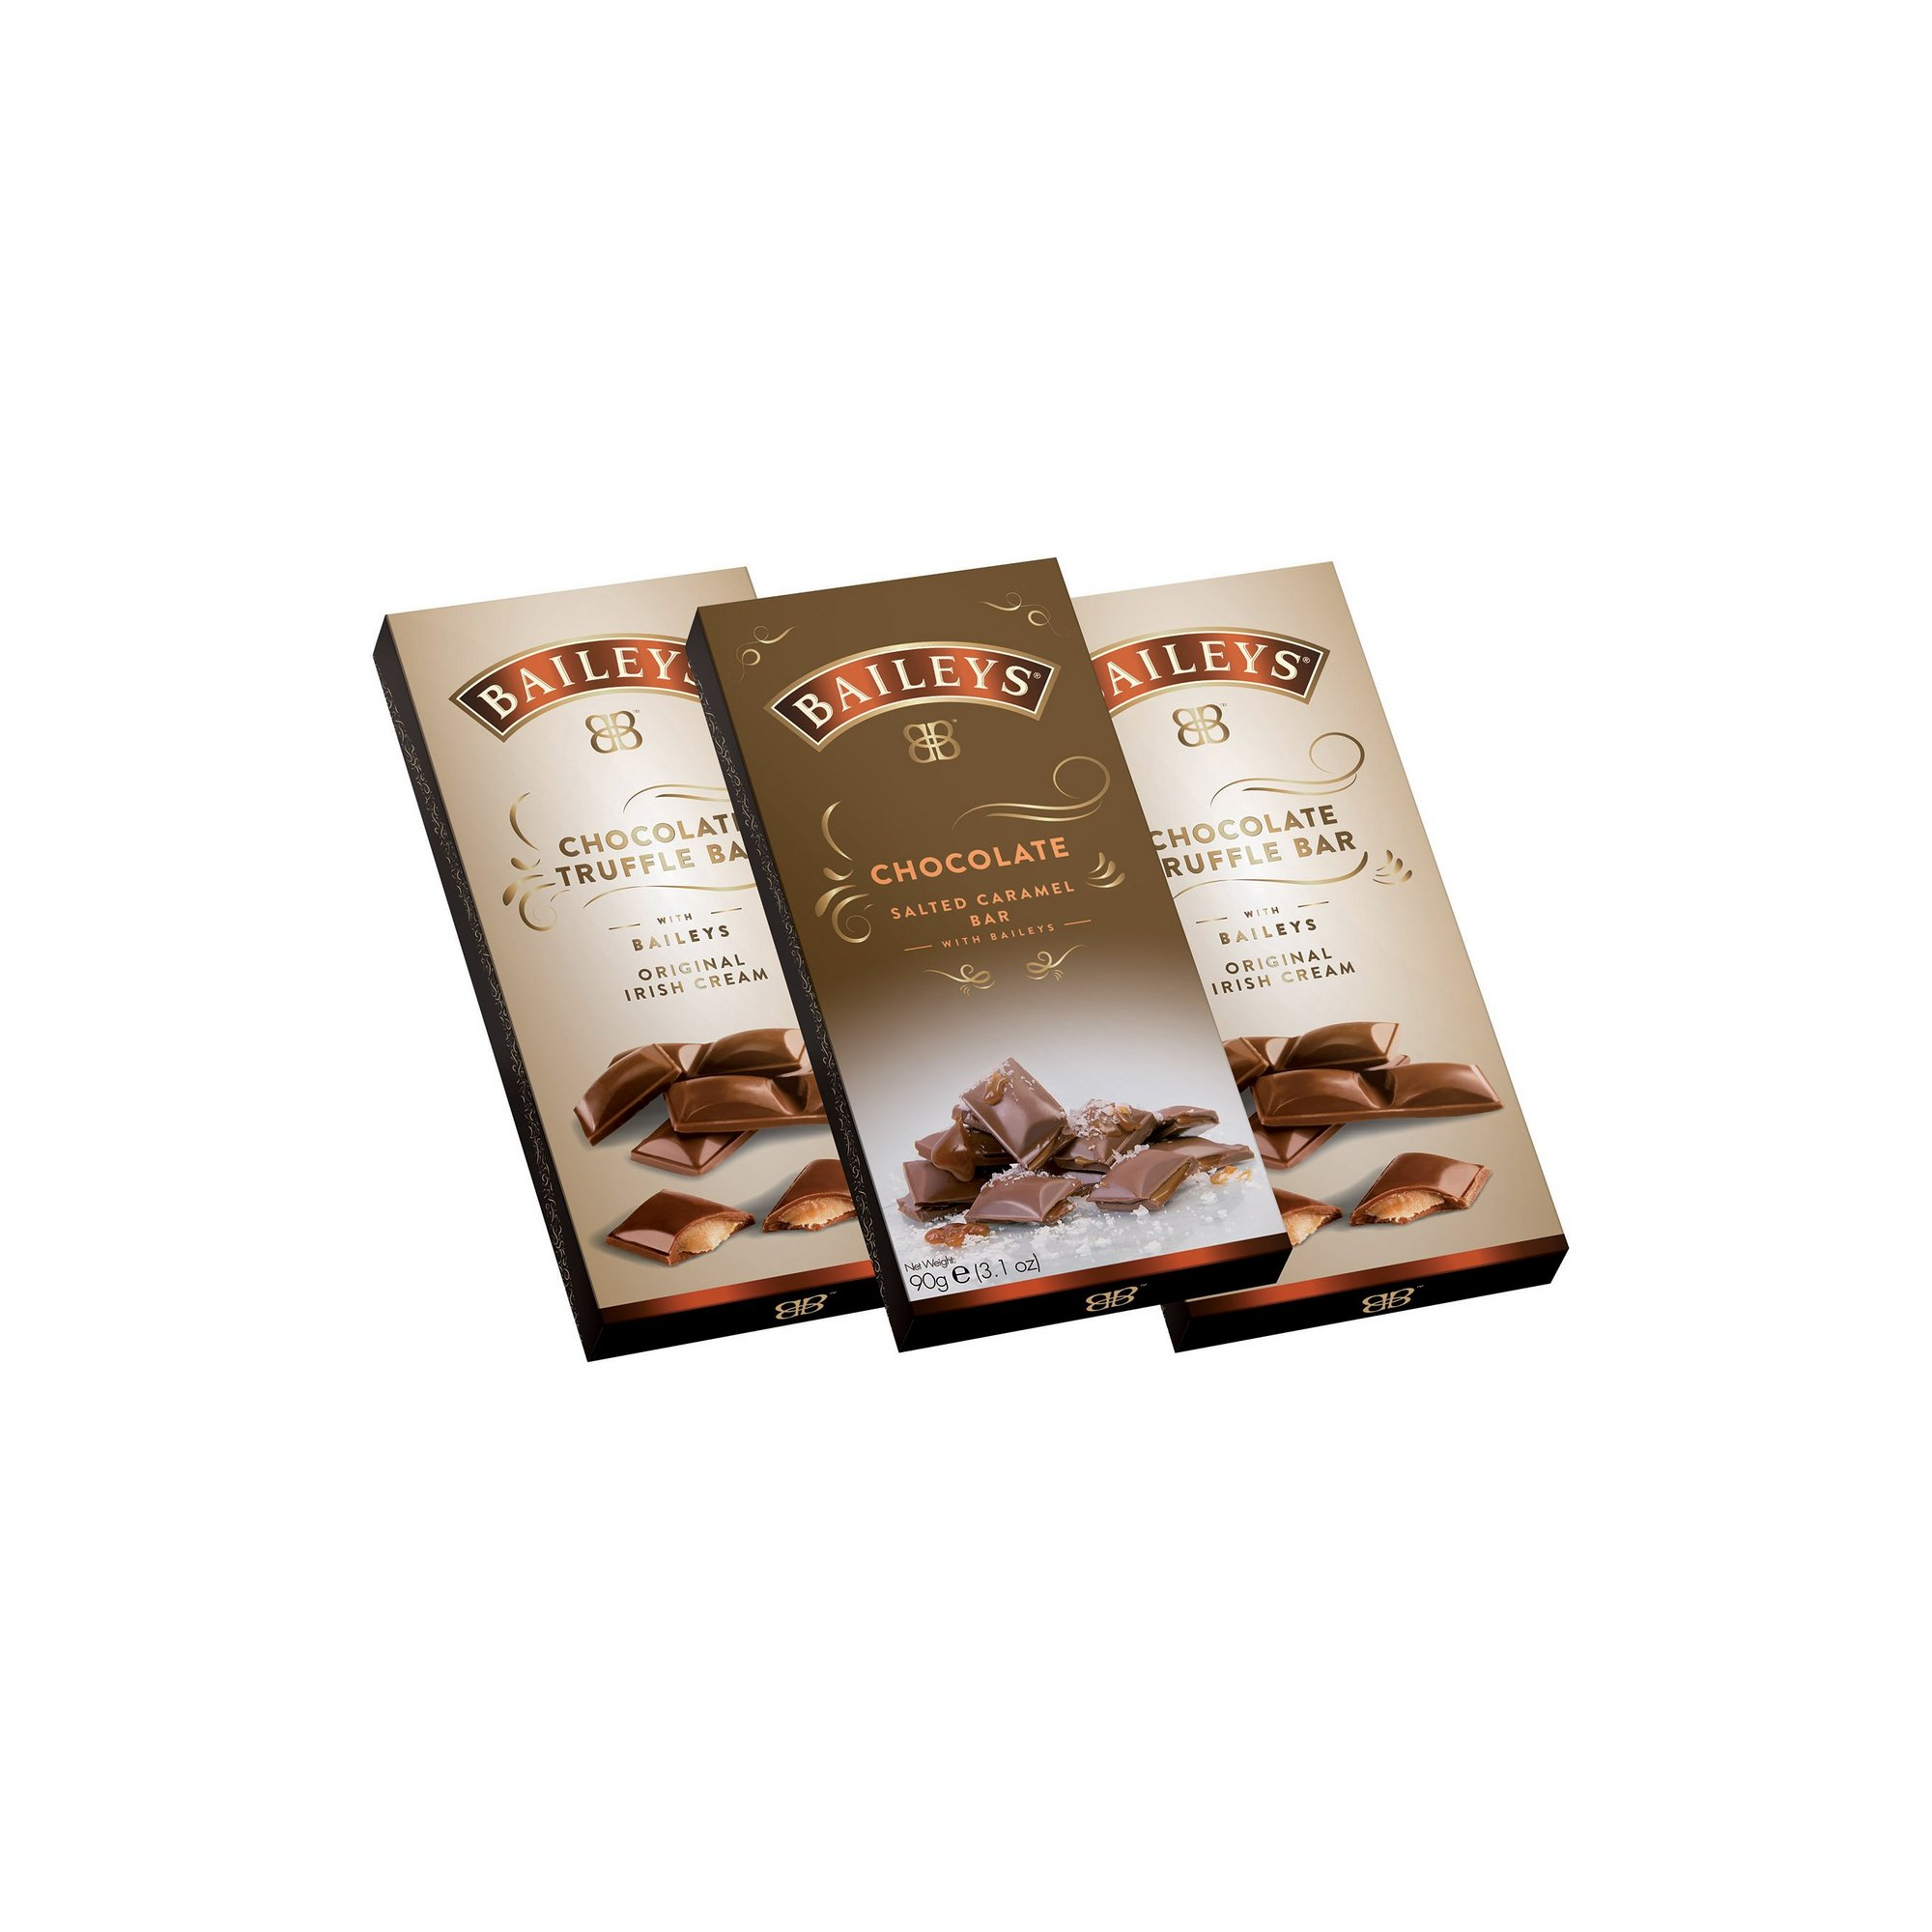 Image of Baileys Chocolate Set